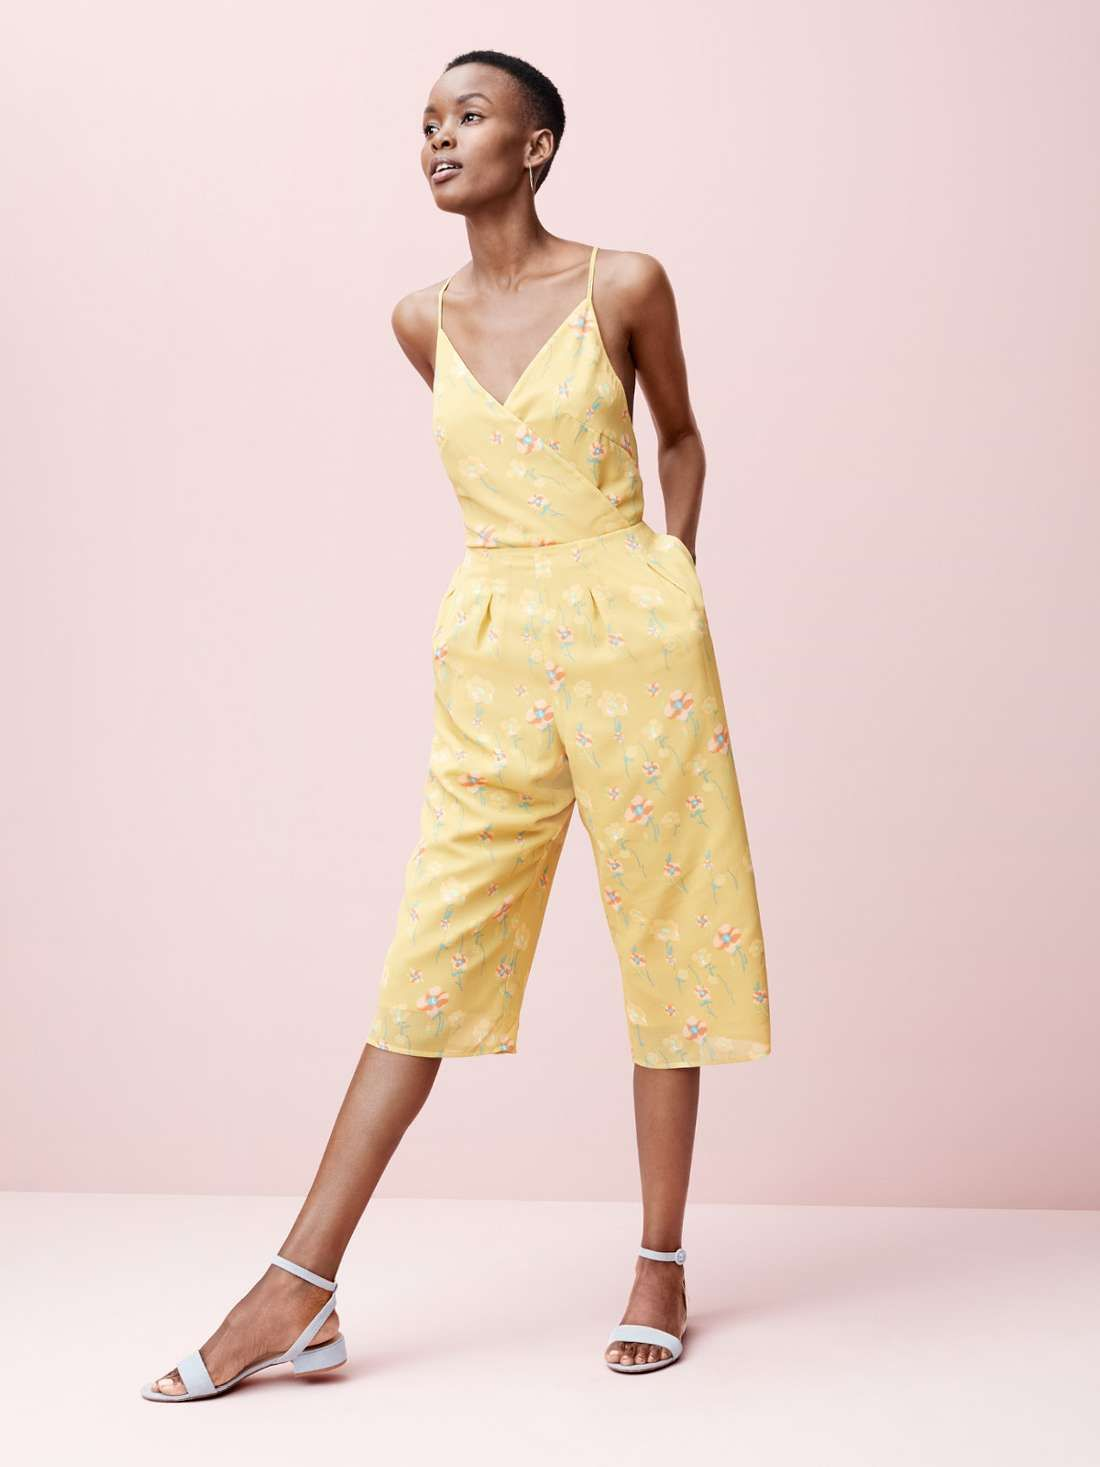 15d31cdfa0f4a Shop A New Day at Target. Women's apparel, designed to fit your lifestyle,  found only at Target. Free shipping on orders $35+.